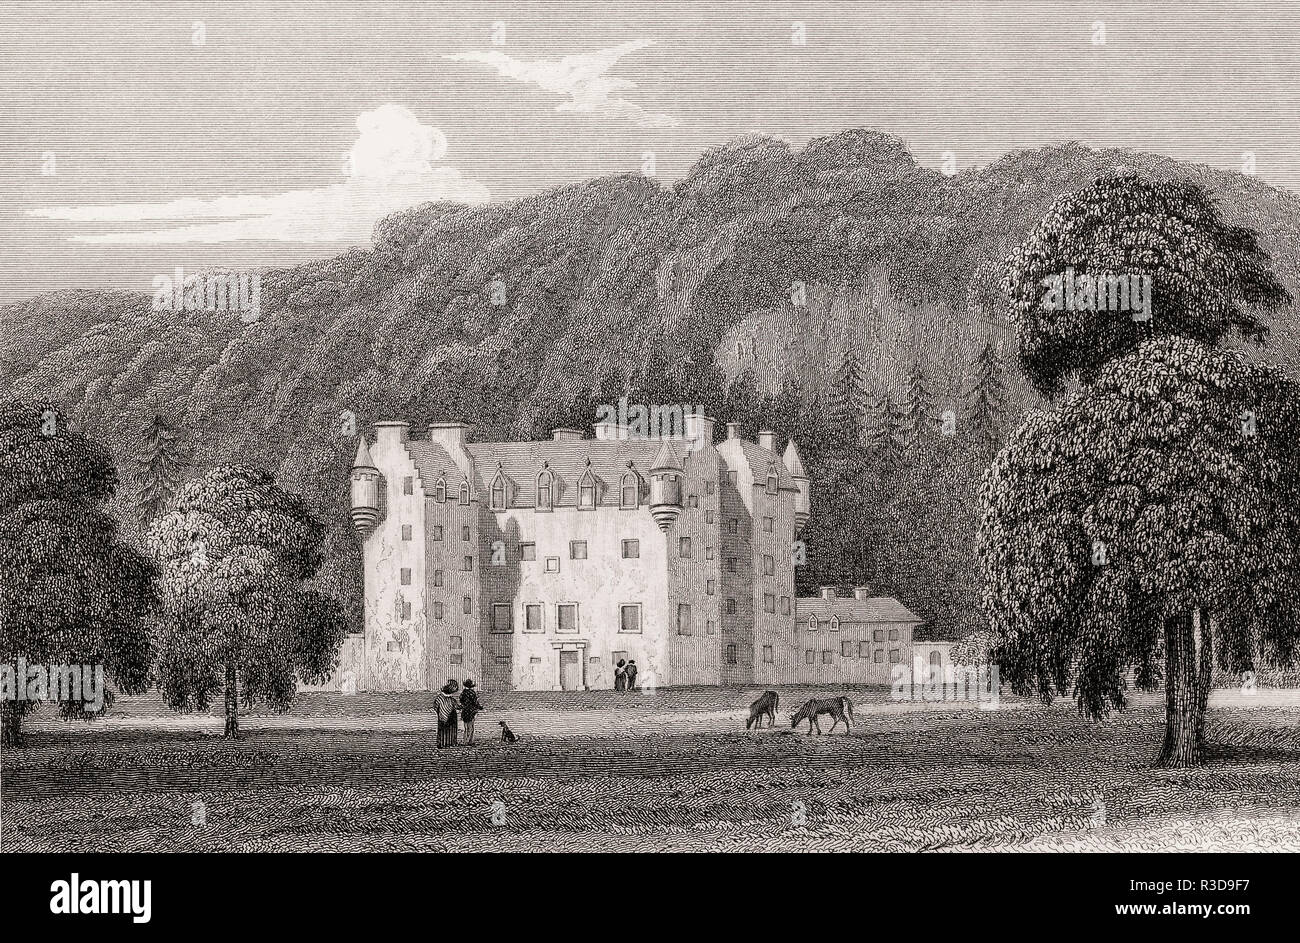 Castle Menzies, Weem, Perthshire, 19th century, from Modern Athens by Th. H. Shepherd - Stock Image